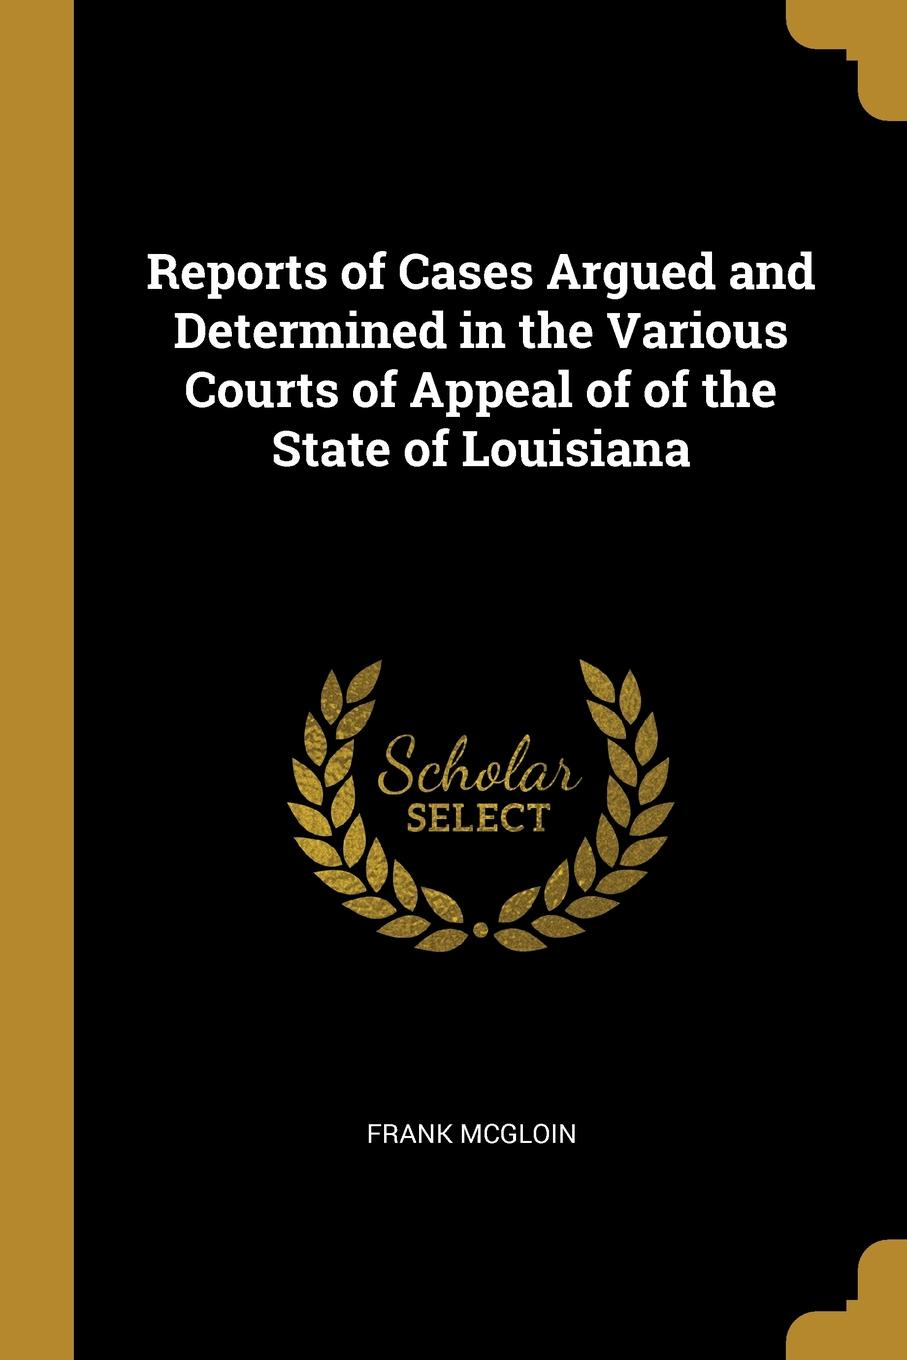 Frank McGloin Reports of Cases Argued and Determined in the Various Courts of Appeal of of the State of Louisiana